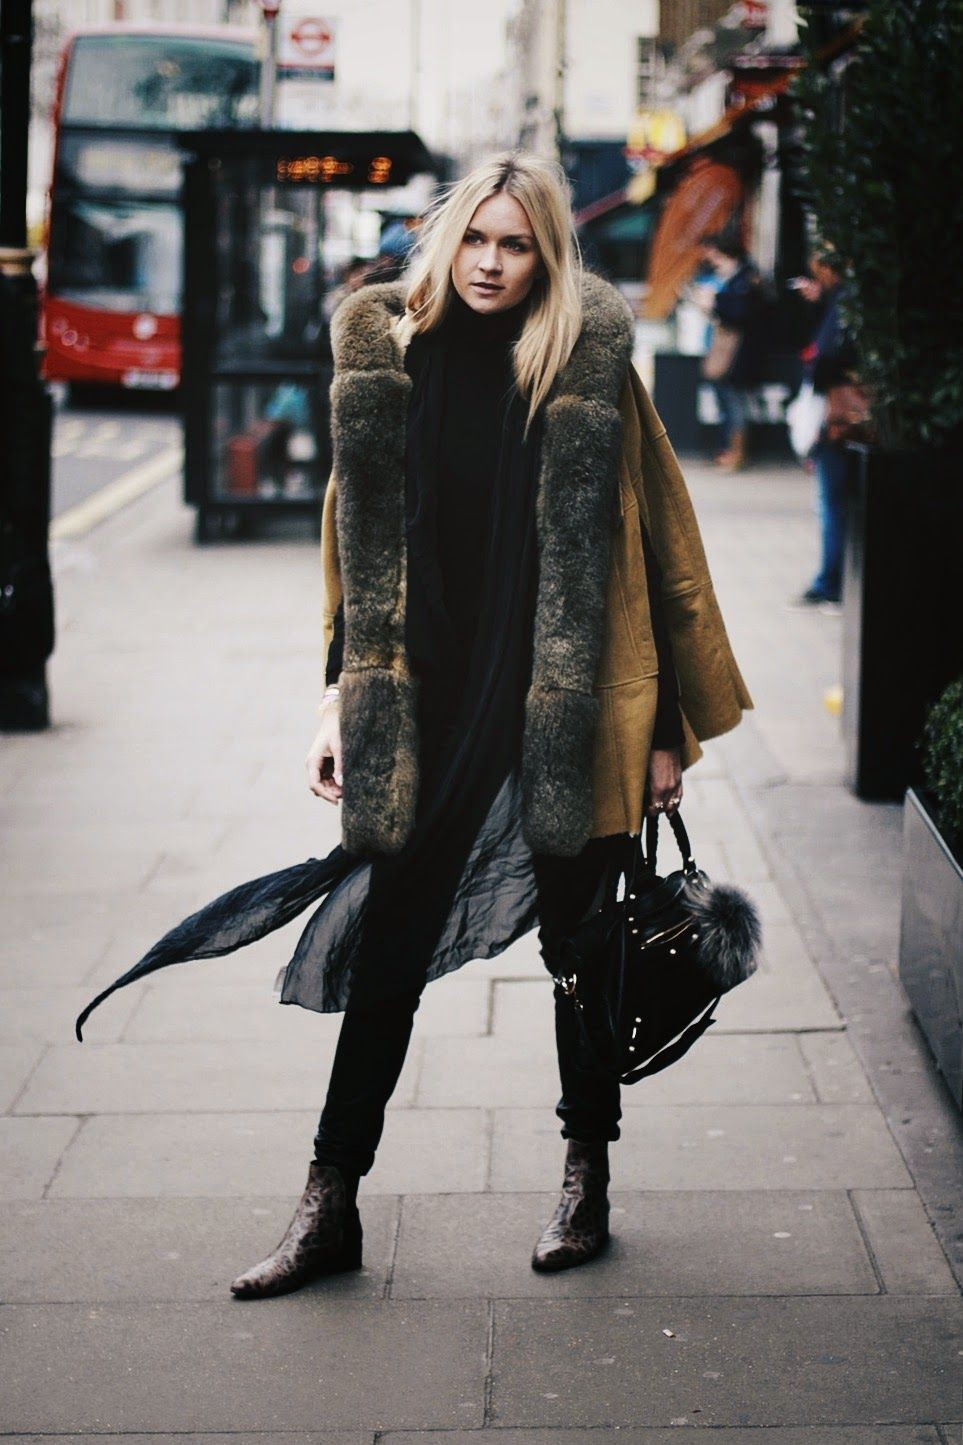 Classy outfit boho streetstyle winter, winter clothing, street fashion, flight jacket, boho chic